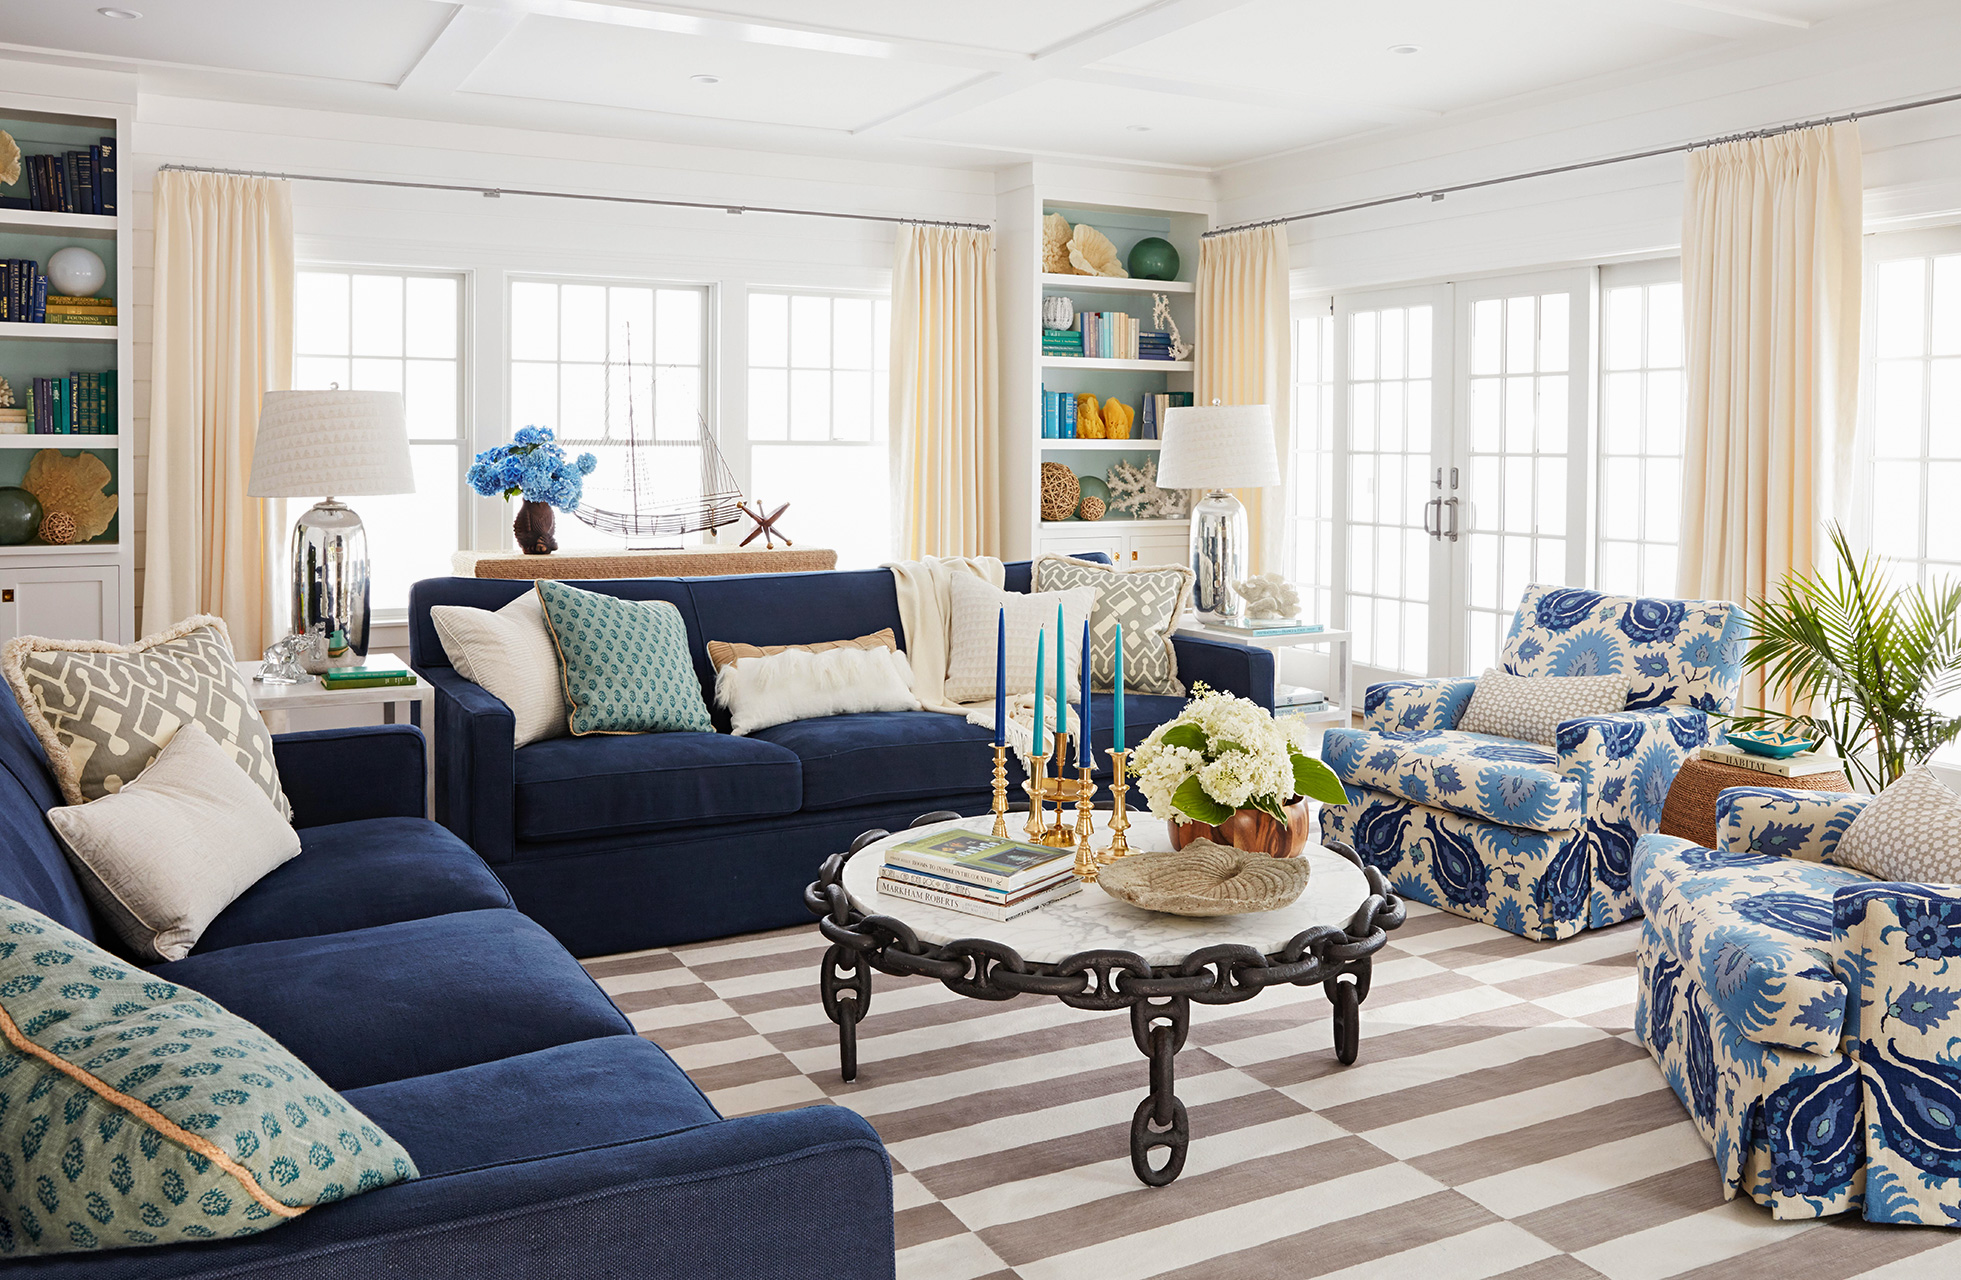 A Kid Friendly Cape Cod Home With Colorful Coastal Elements